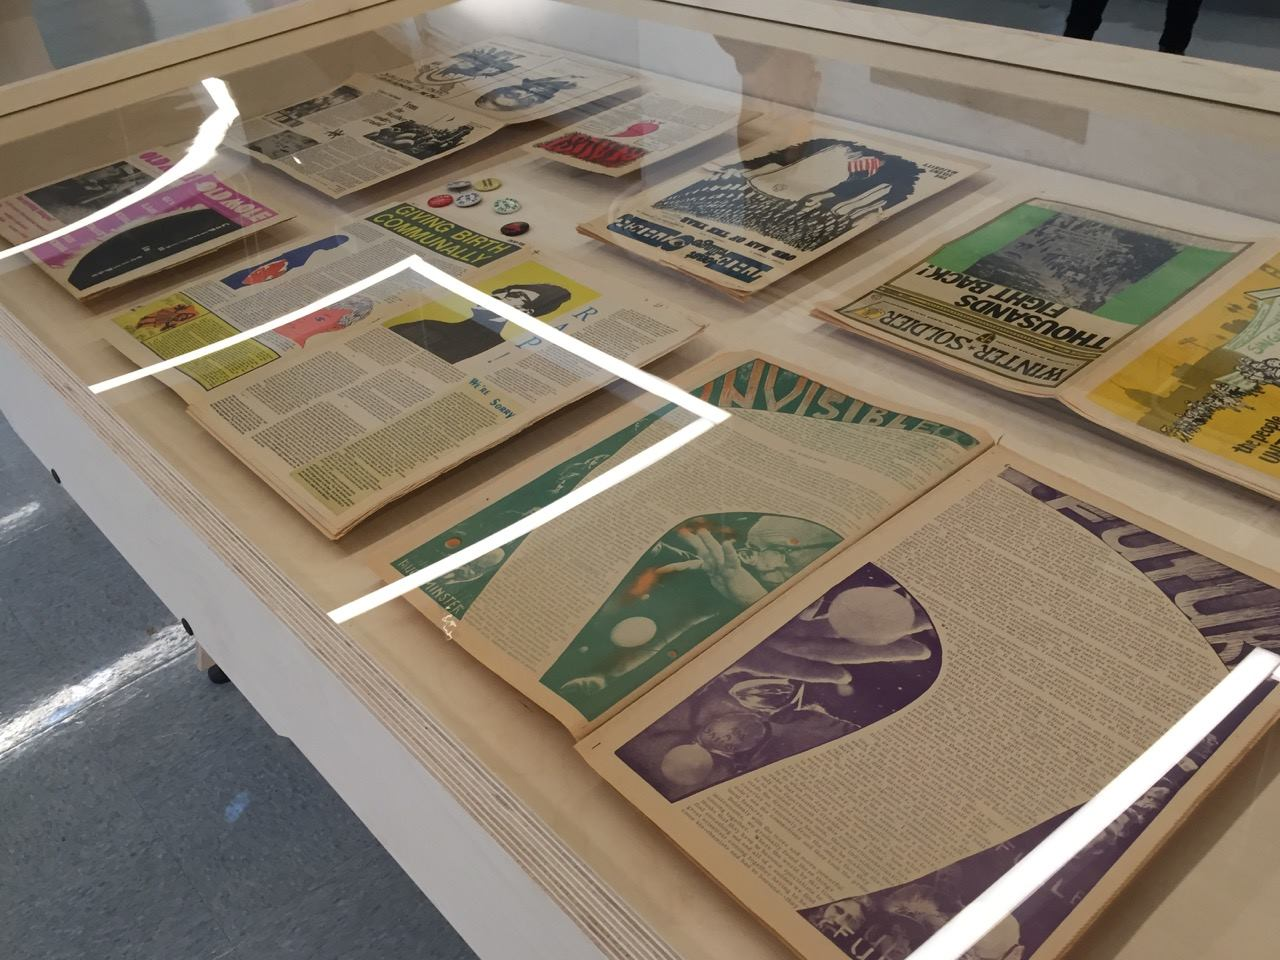 Counterculture newspapers on display as part of the Revolution Times exhibit.